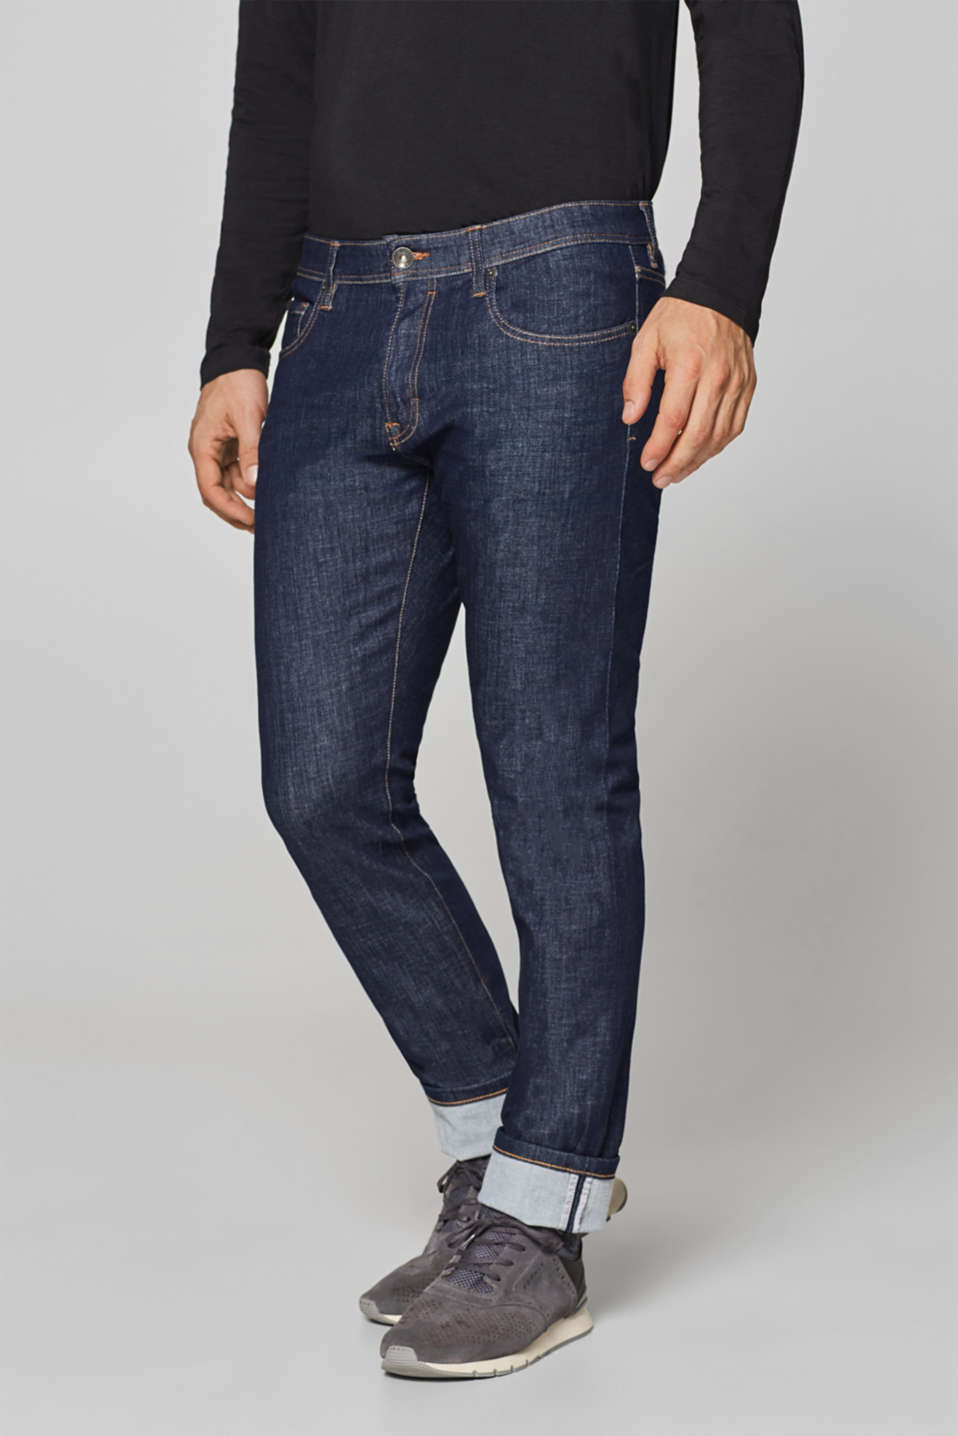 Esprit - Super stretchy jeans with reflective tape